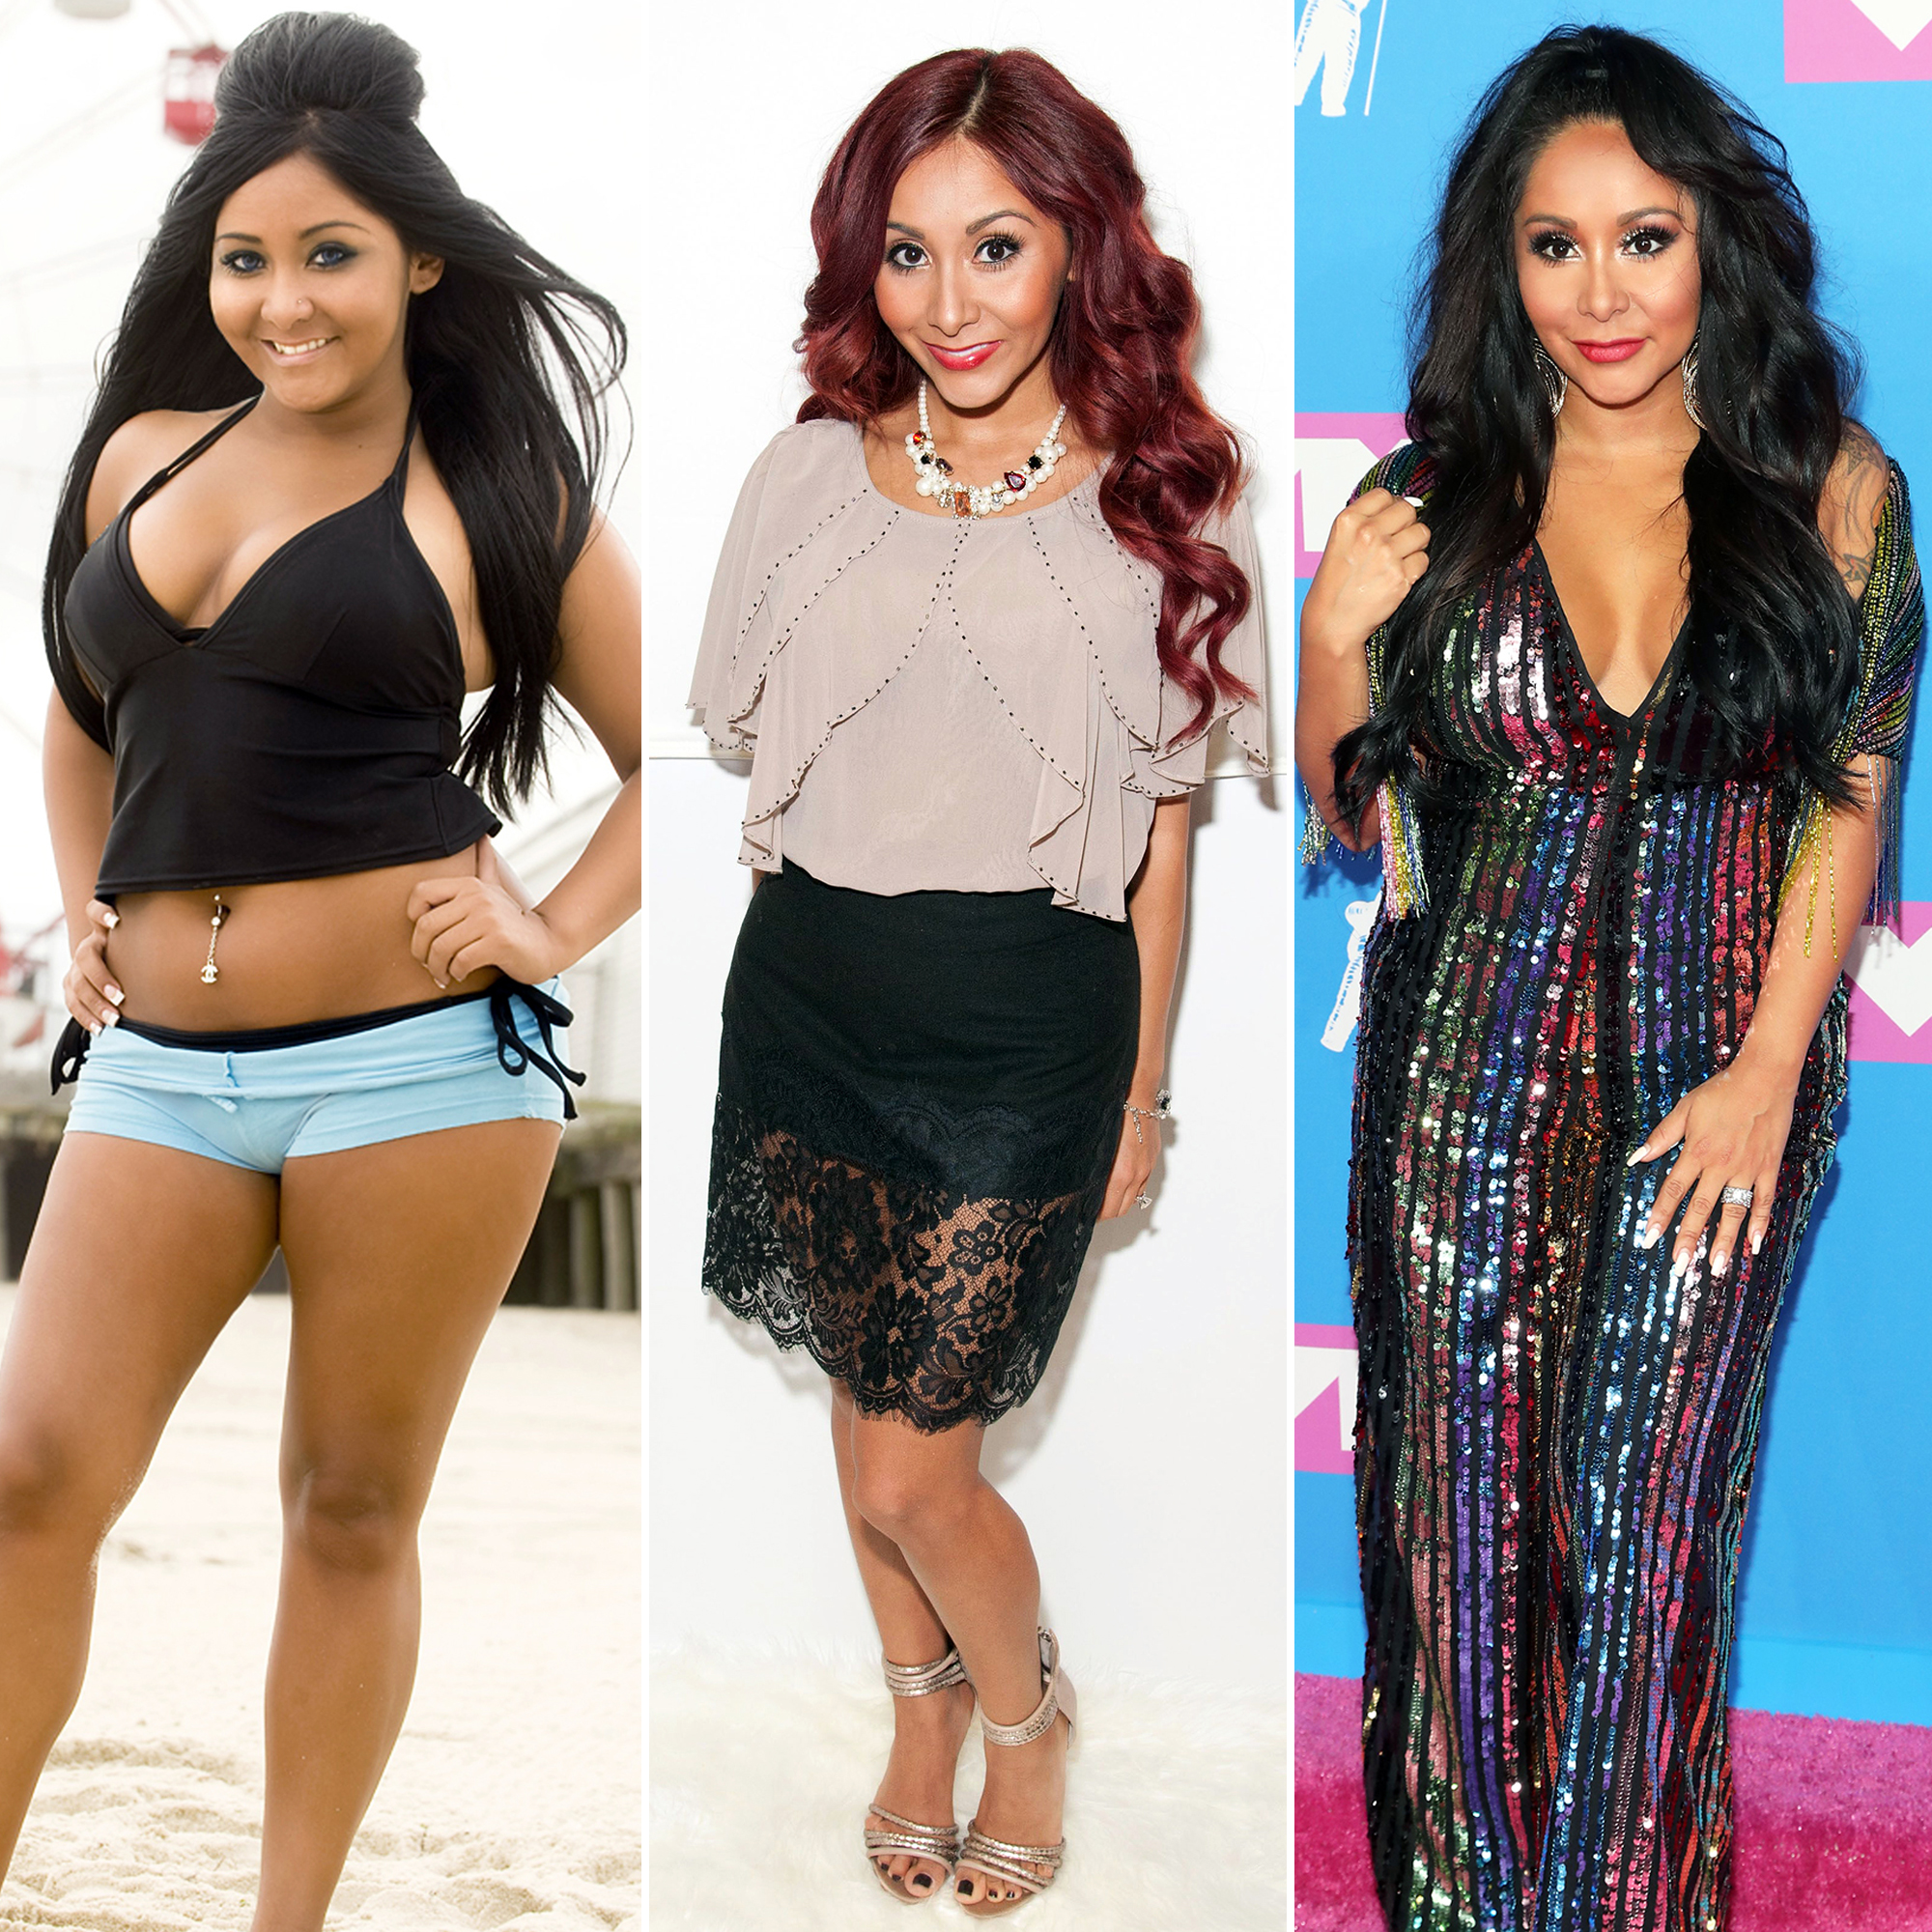 Snooki's Transformation: See the 'Jersey Shore' Star Then and Now